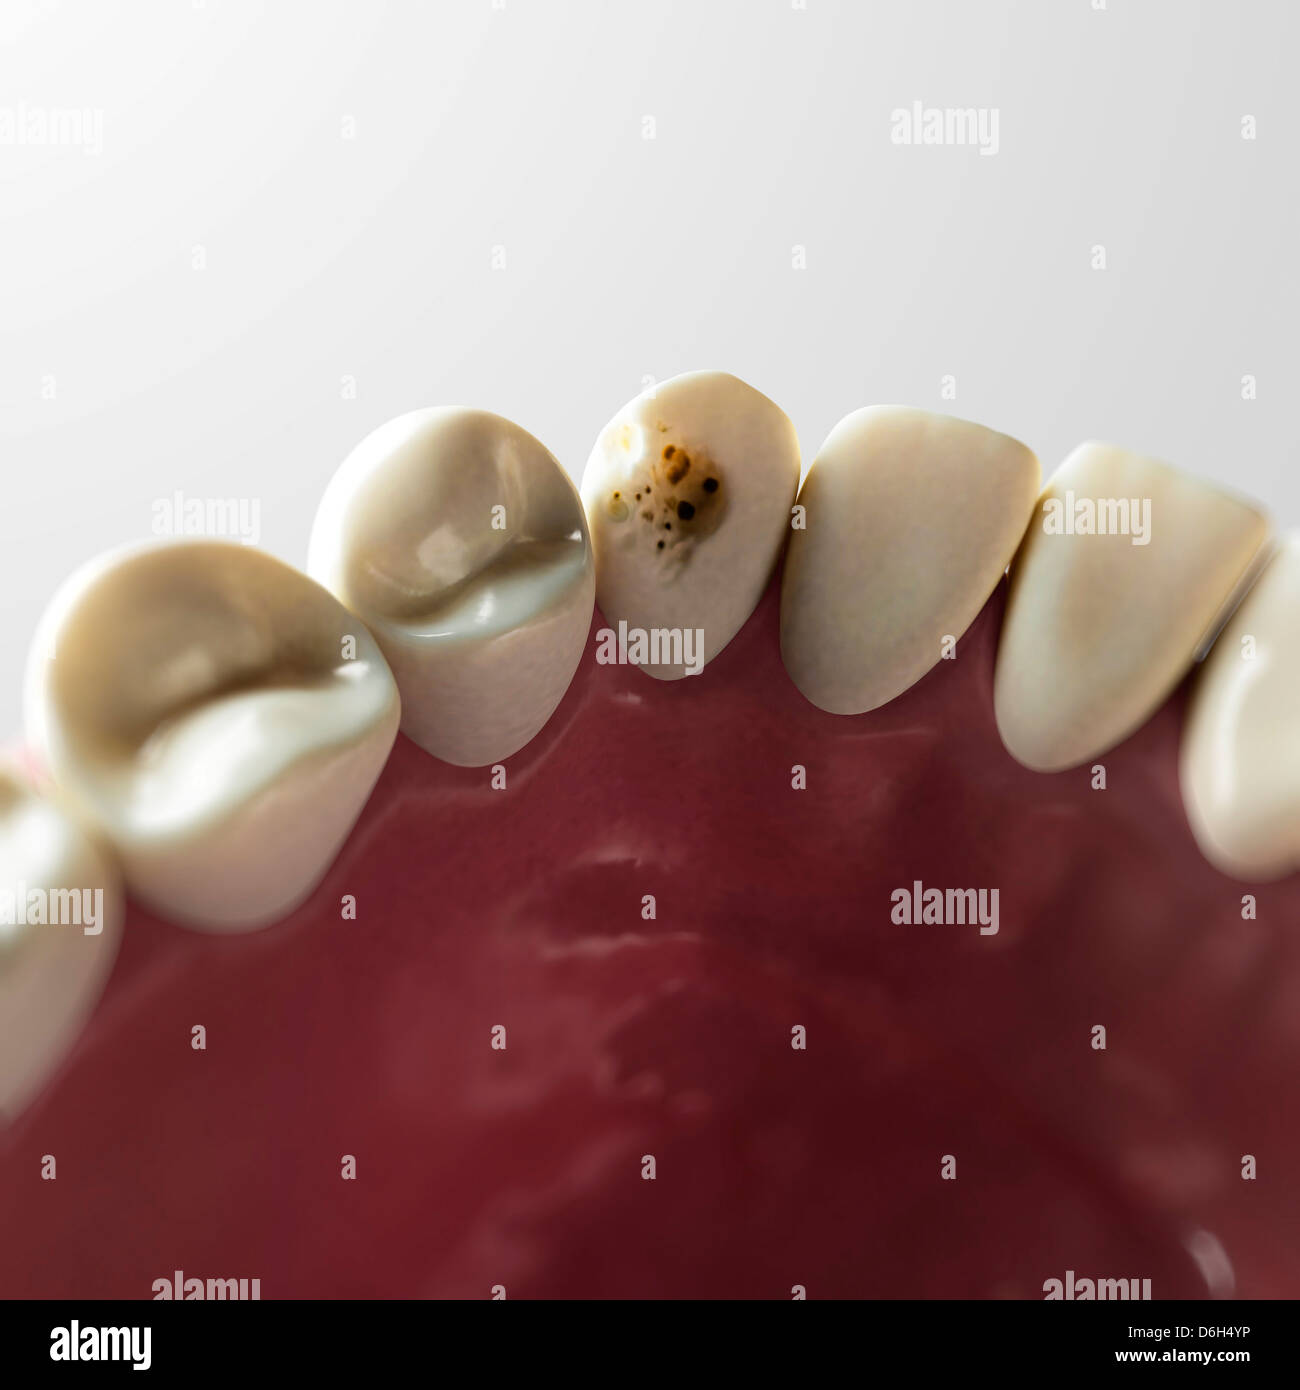 Tooth decay, artwork - Stock Image